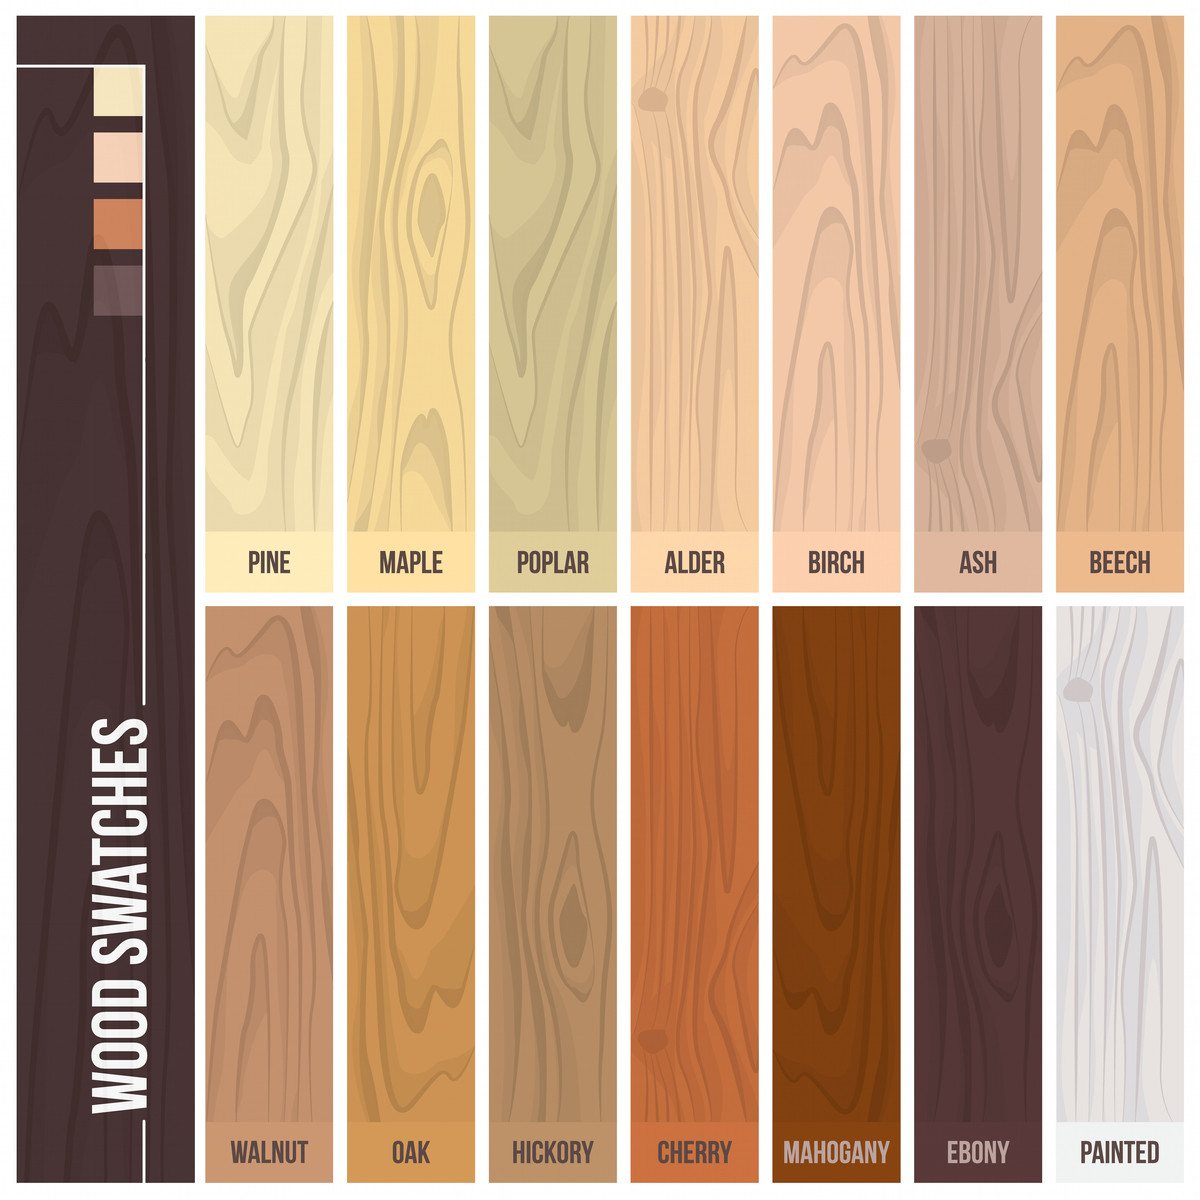 american hickory hardwood flooring of 12 types of hardwood flooring species styles edging dimensions throughout types of hardwood flooring illustrated guide